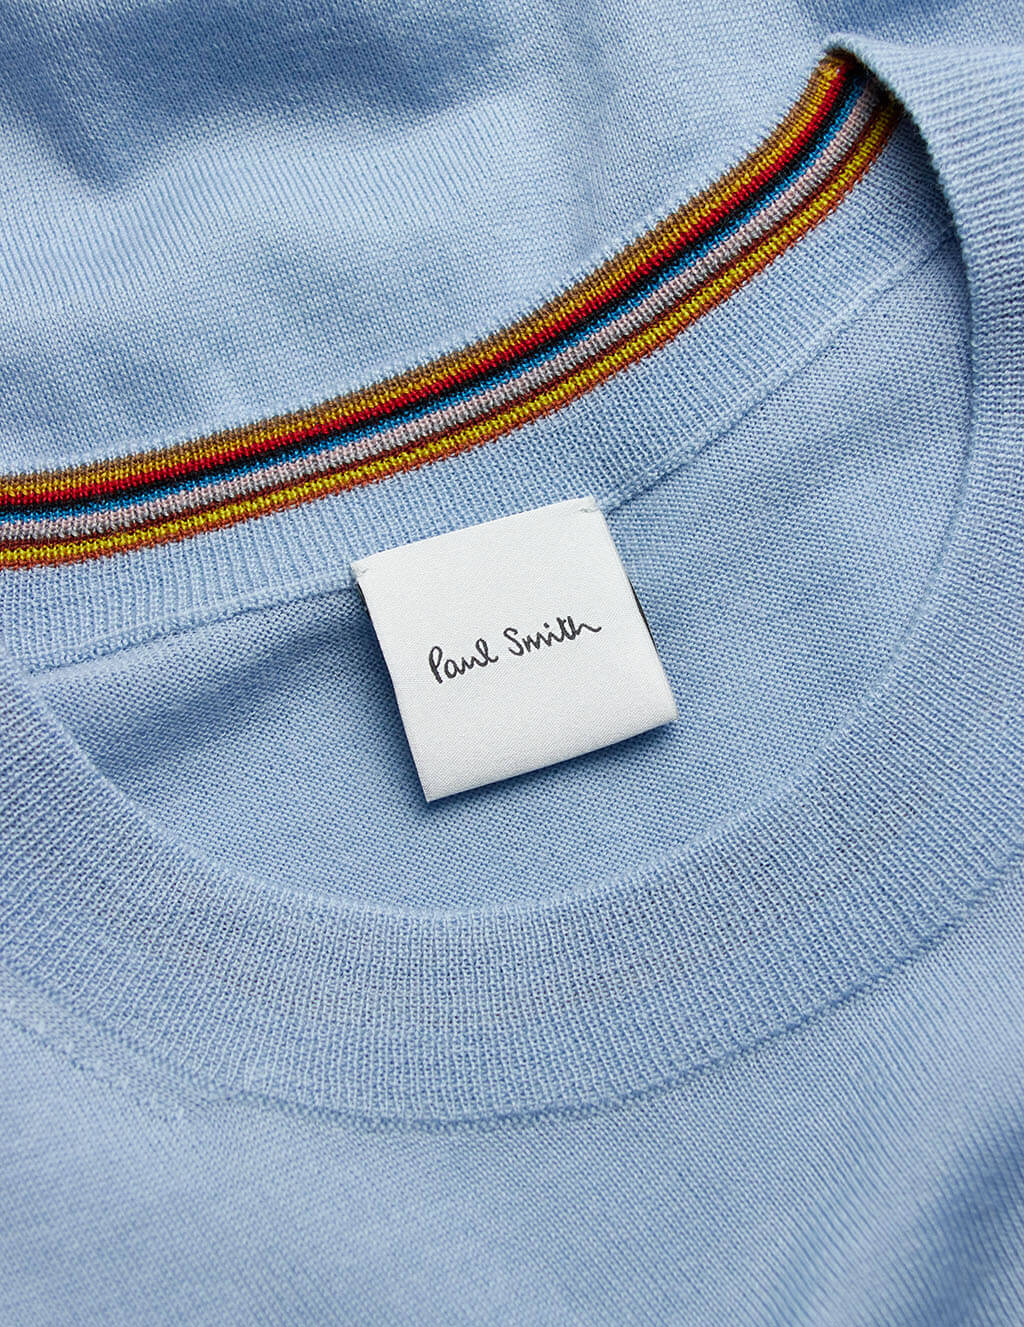 Men's Paul Smith Merino Wool Sweater in Light Blue - M1R-053U-E01200-44